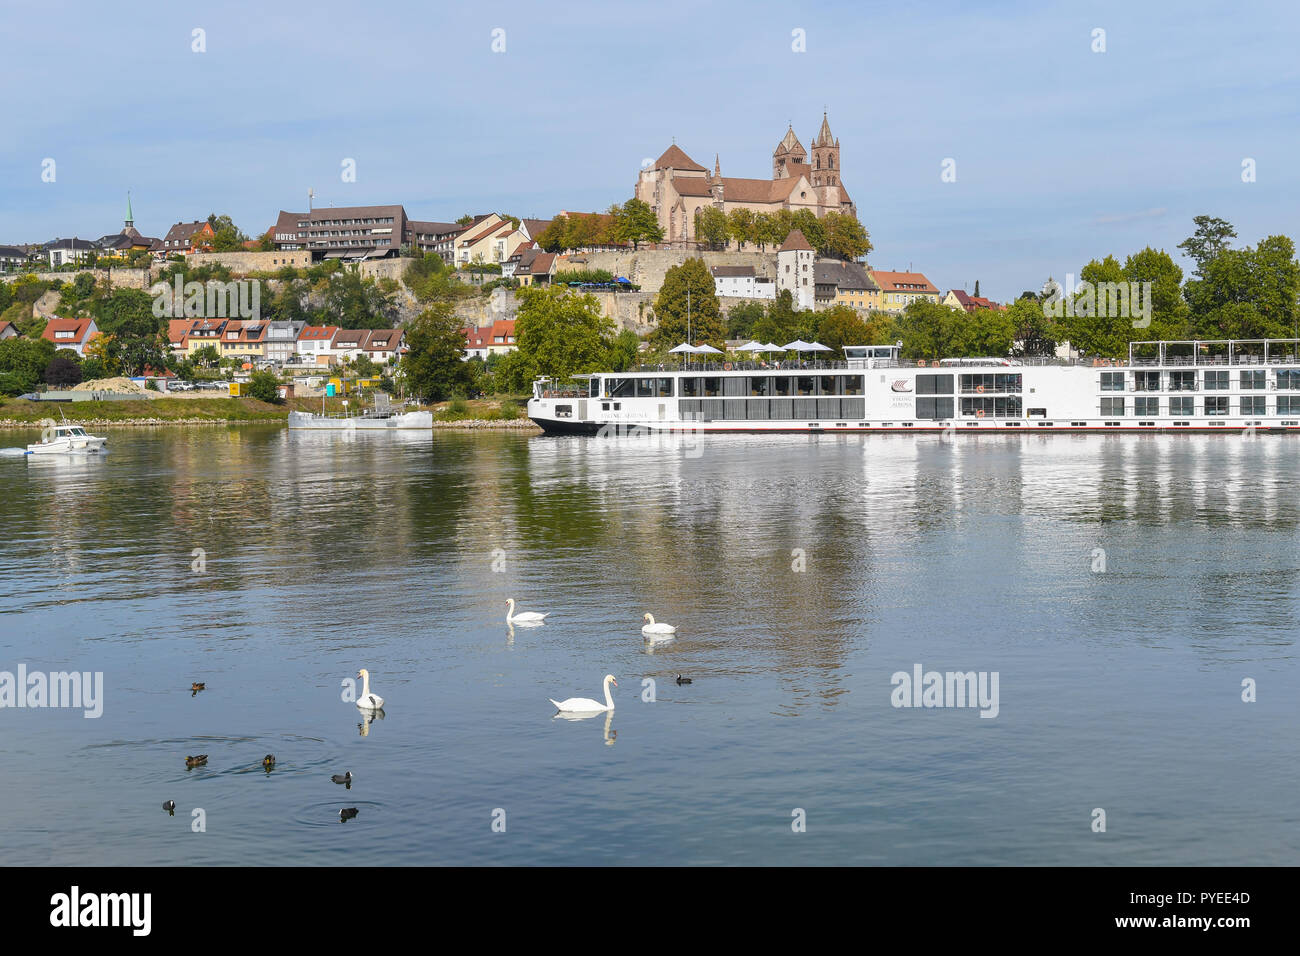 viking river cruise boat moored at Breisach am Rhein, Baden Wurttemberg, Germany - Stock Image